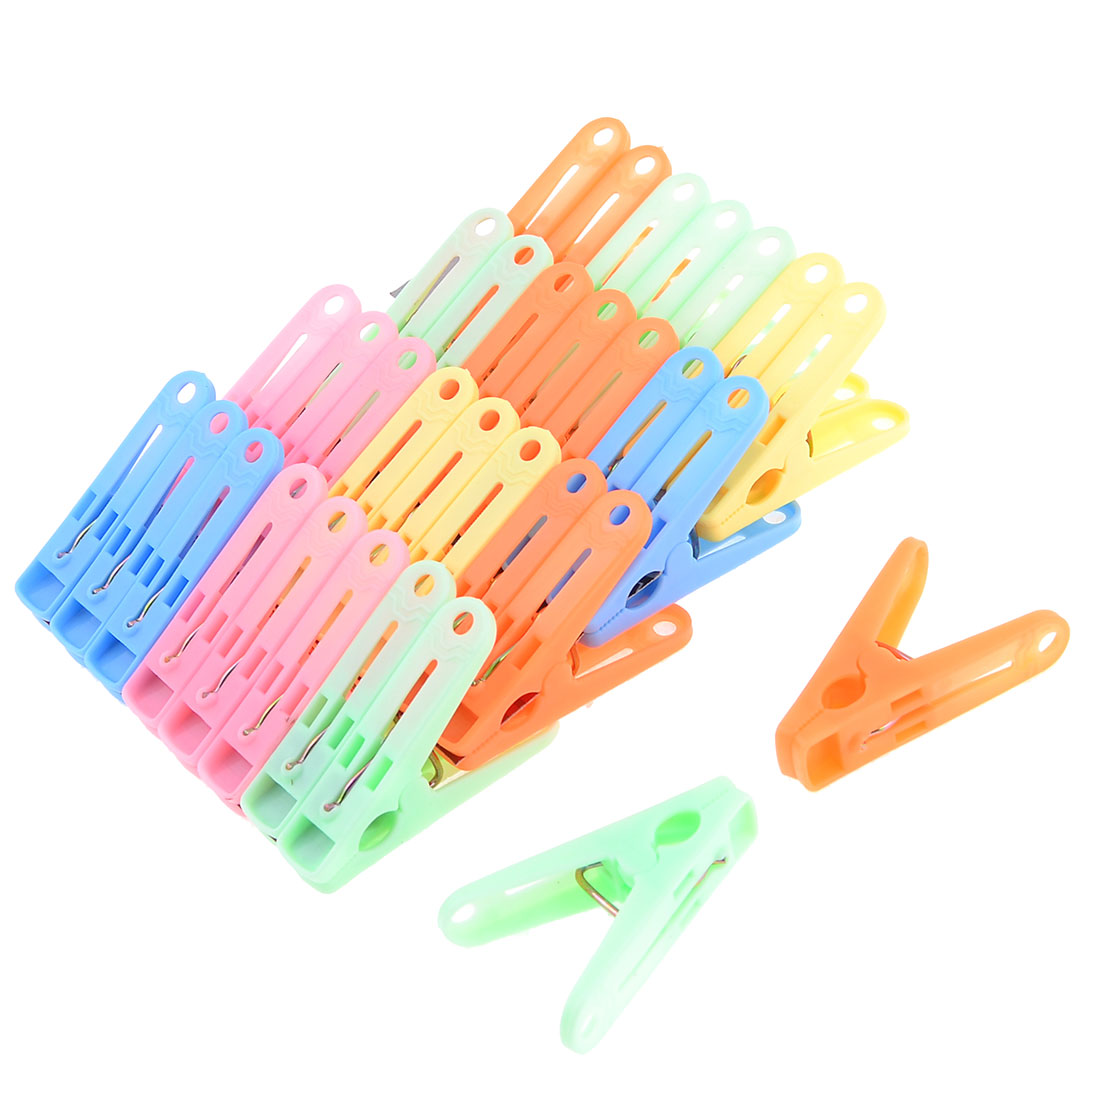 32 Pcs Home Laundry Multi Color Plastic Clothing Pegs Clips Clamps